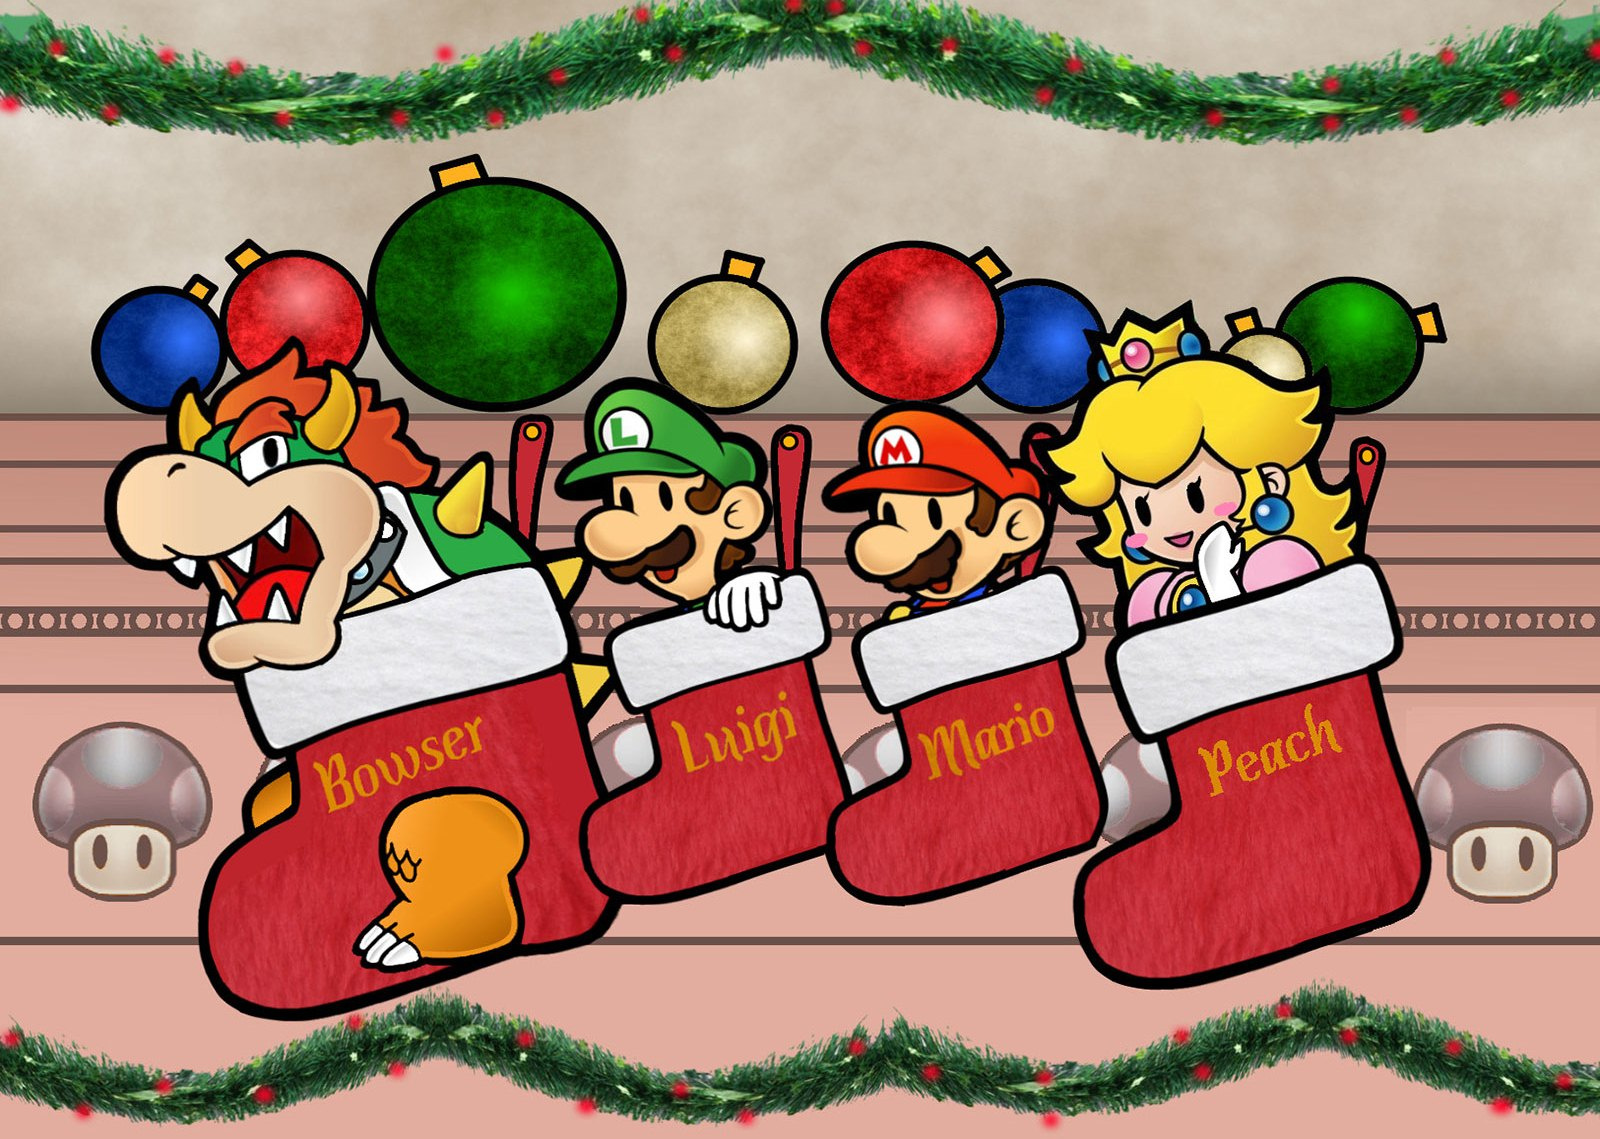 http://images.nintendolife.com/news/2012/12/round_table_time_for_a_festive_chat1/attachment/0/original.jpg